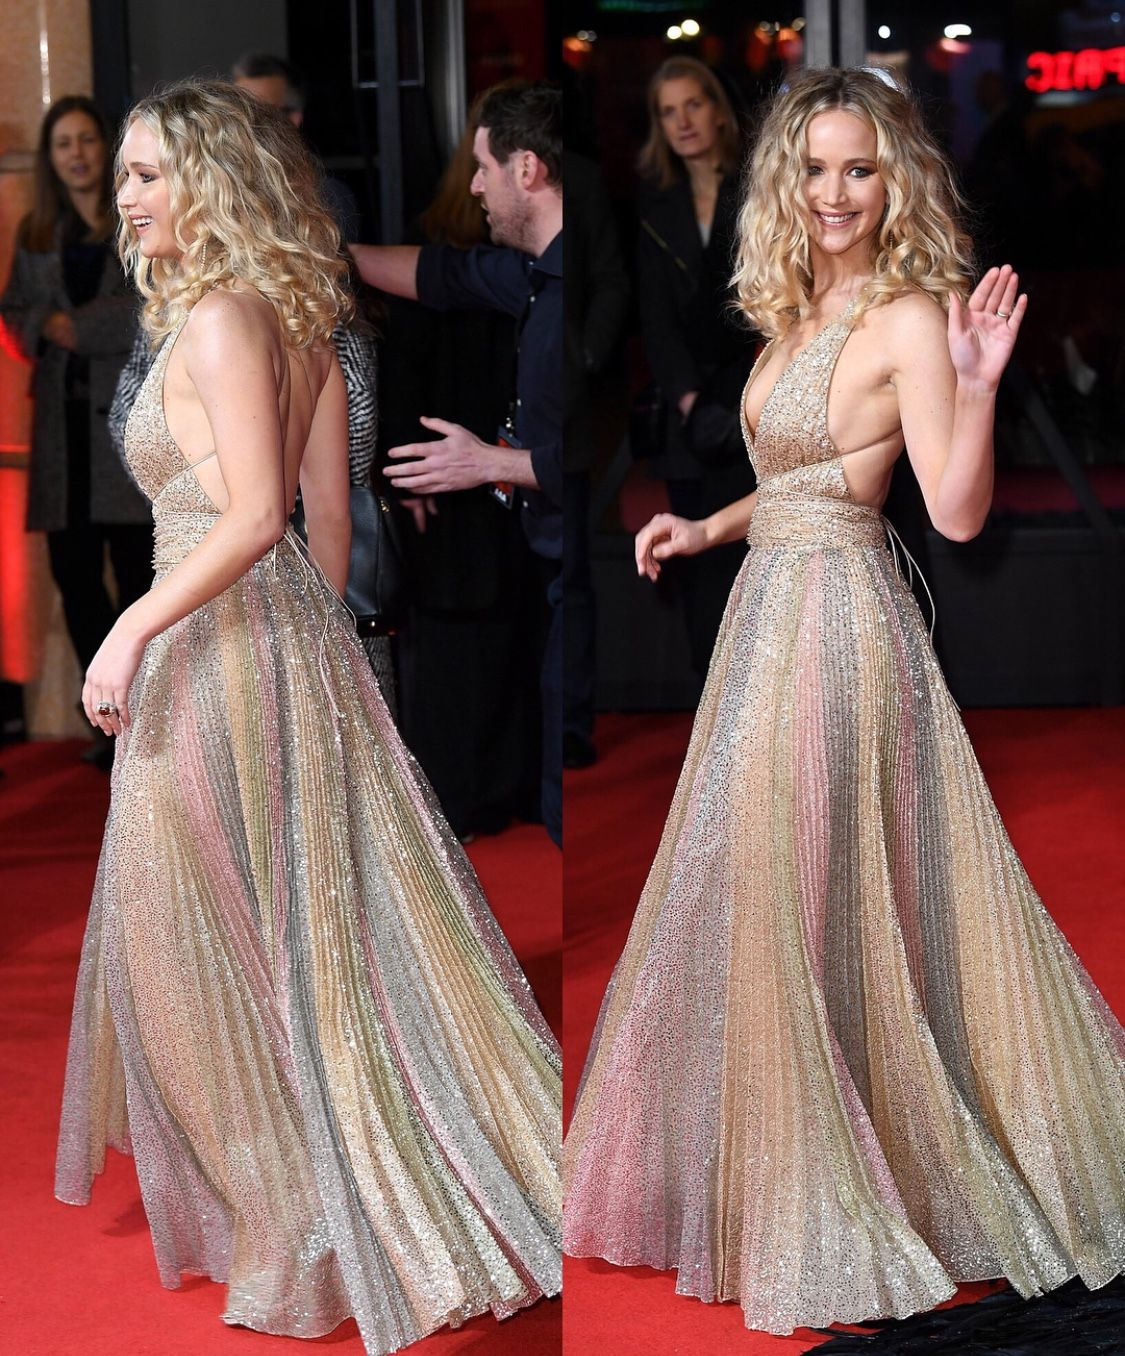 Jennifer Lawrence Works the Red Carpet at Red Sparrow